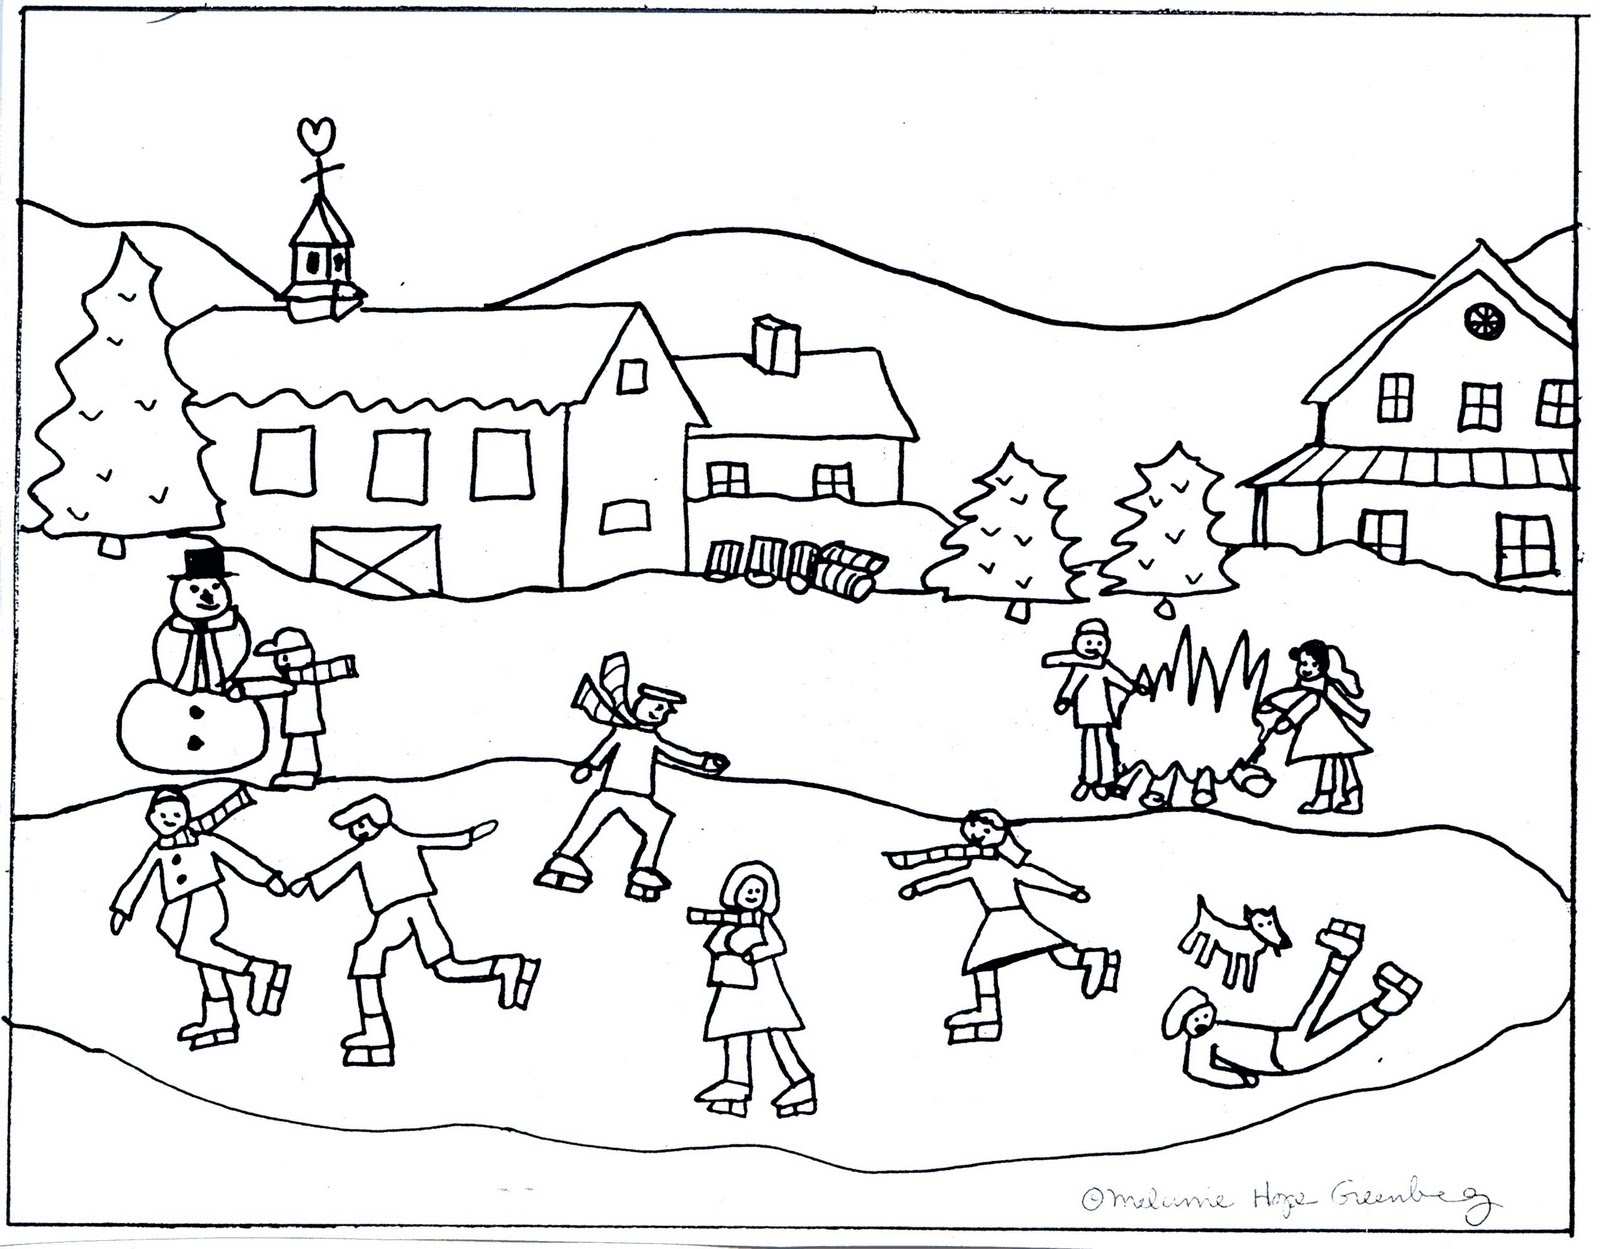 1600x1249 Winter Scene Coloring Pages Winter Scene Skating Coloring Page 2